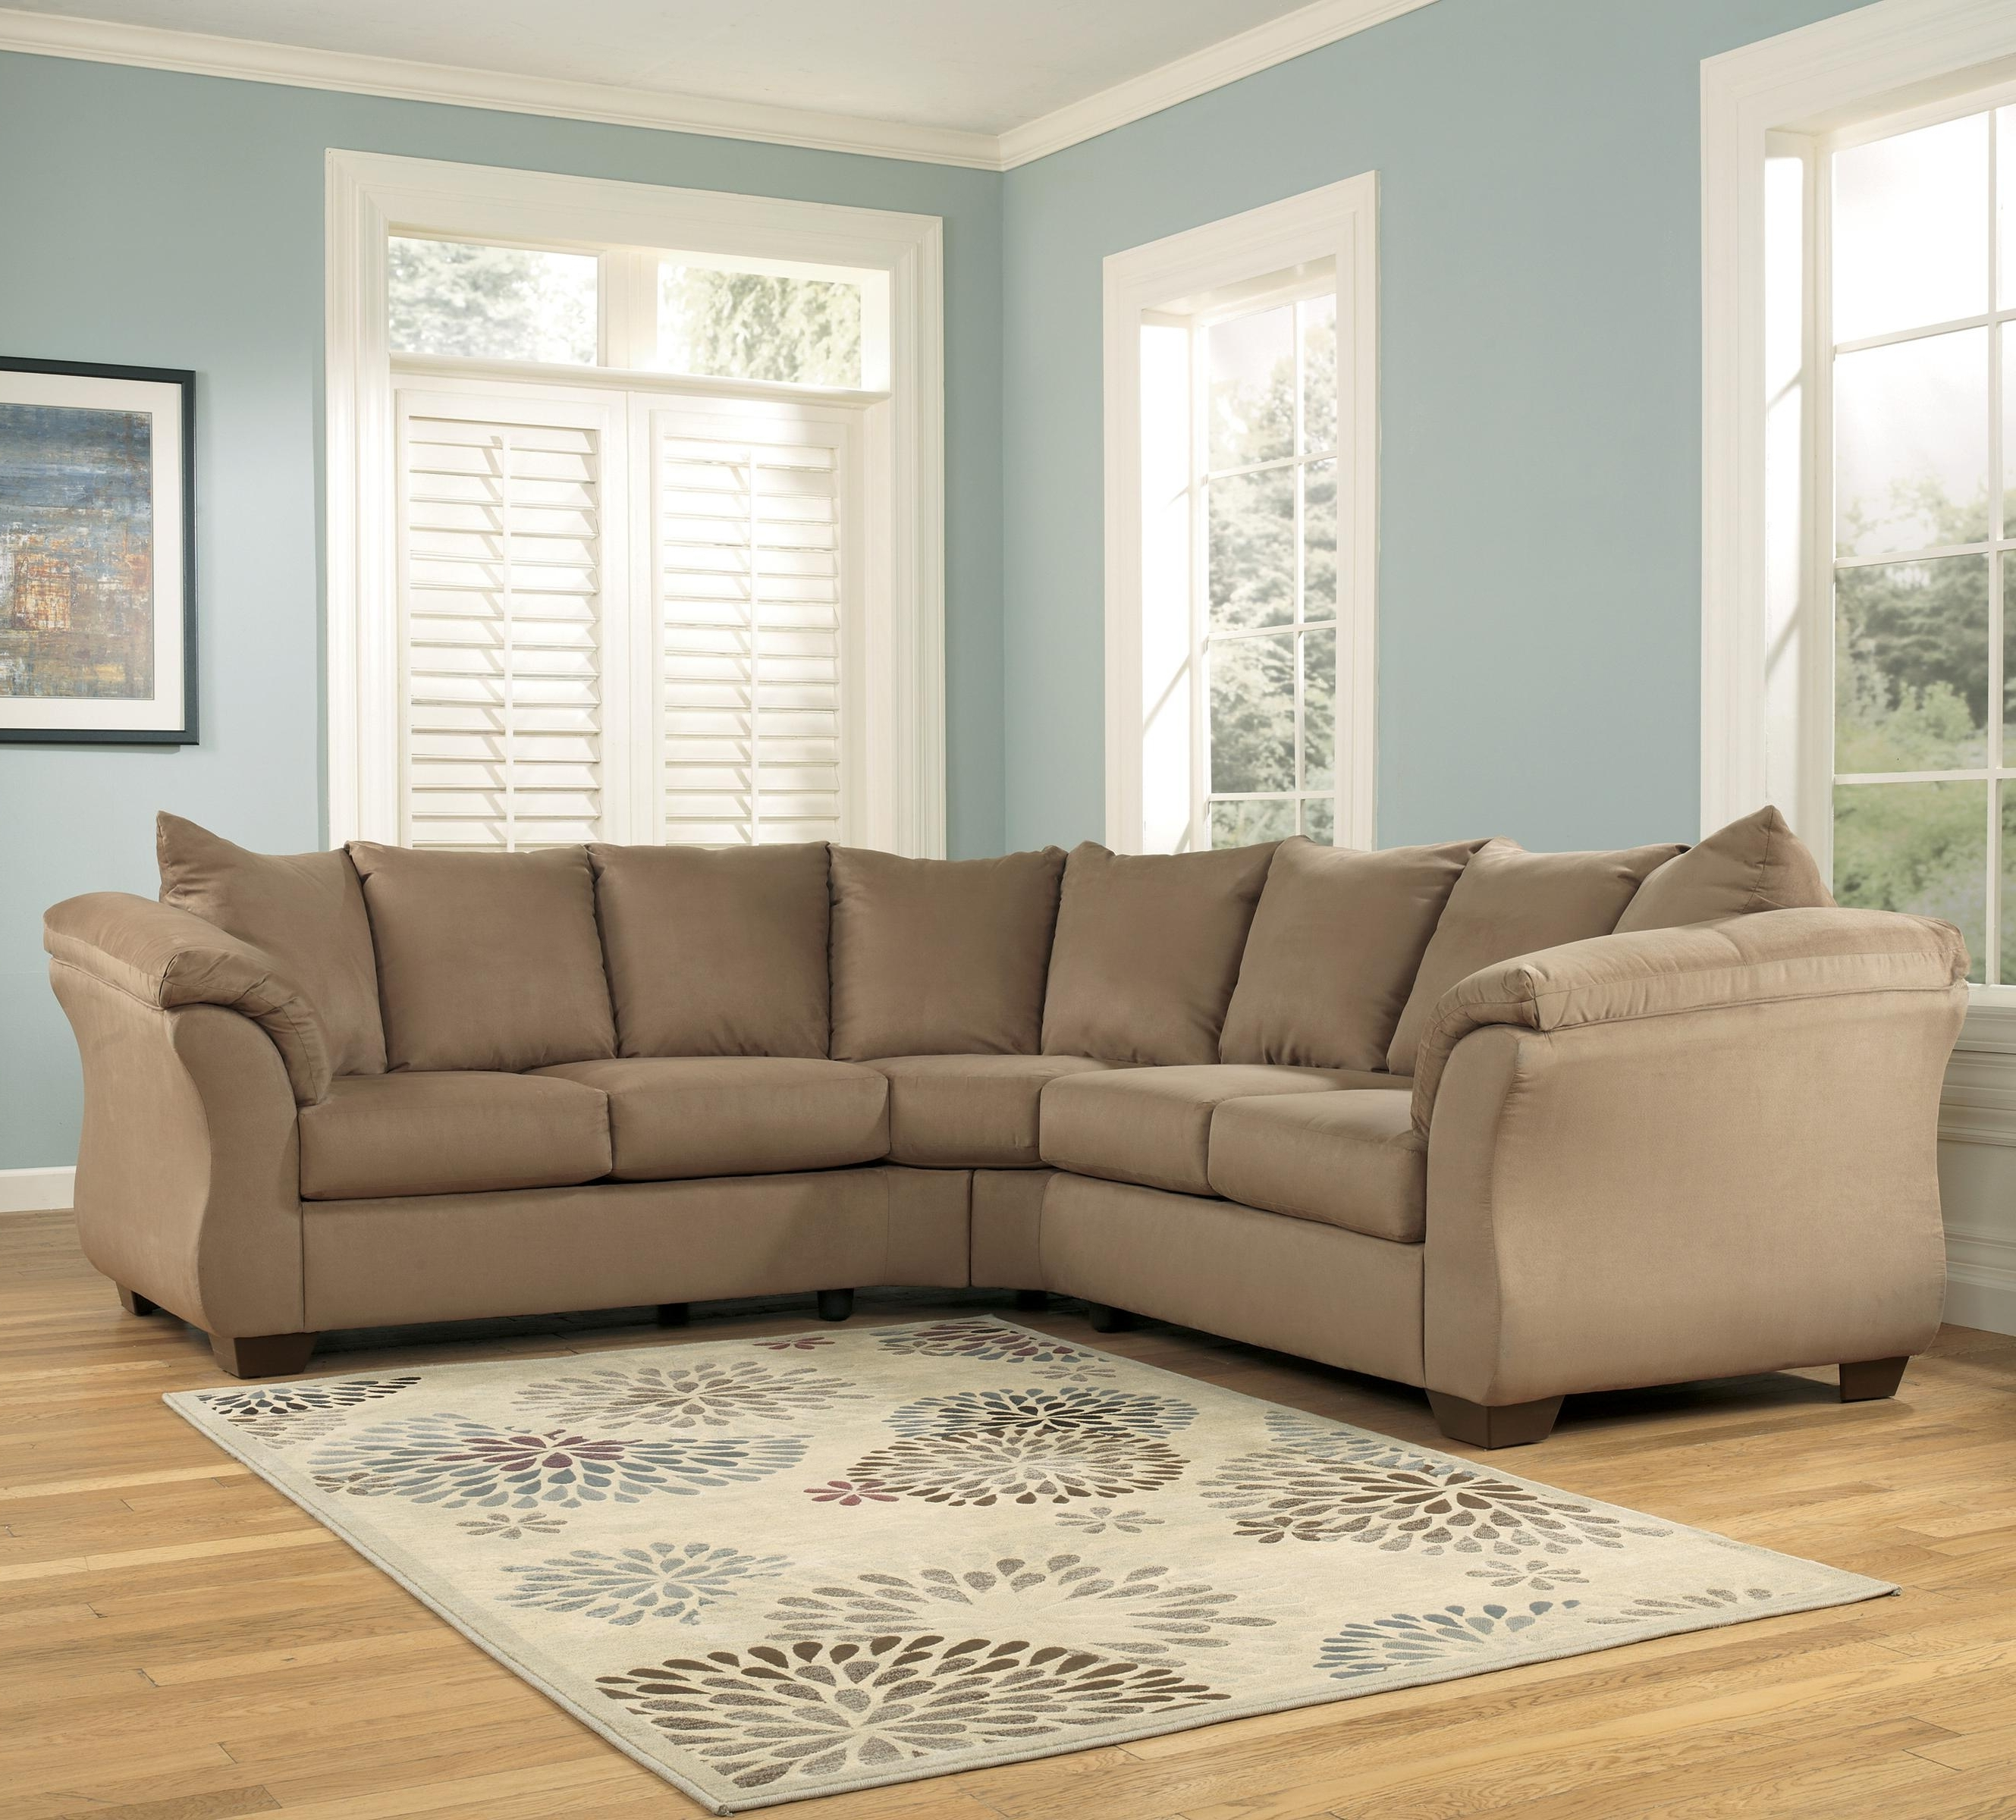 102X102 Sectional Sofas Intended For Newest Signature Designashley Darcy – Mocha Contemporary Sectional (View 13 of 15)